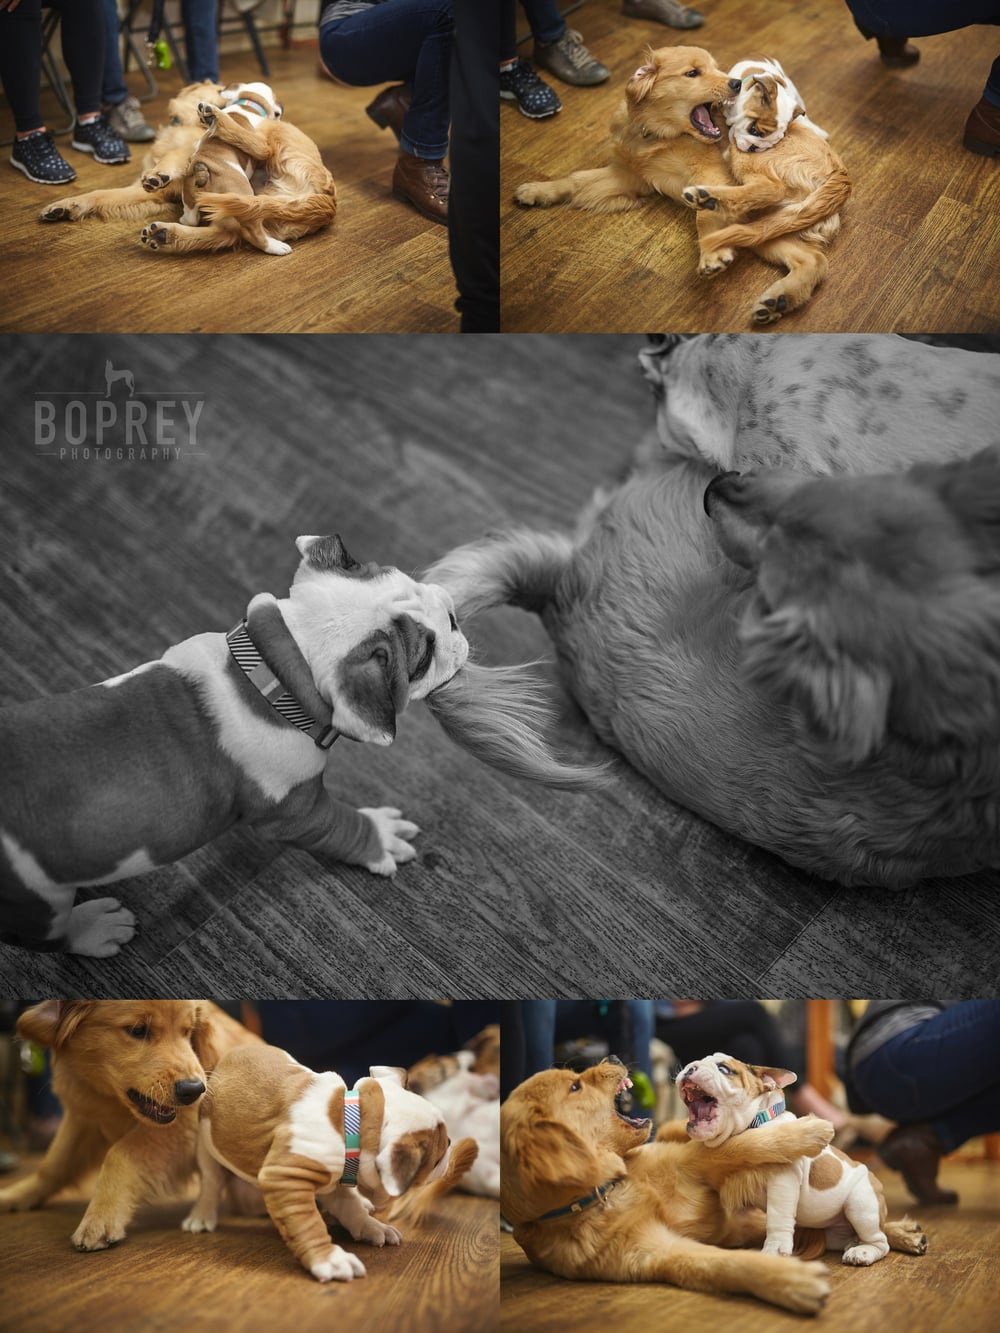 Rosie the English Bulldog roughing around with Milo the Golden Retriever.